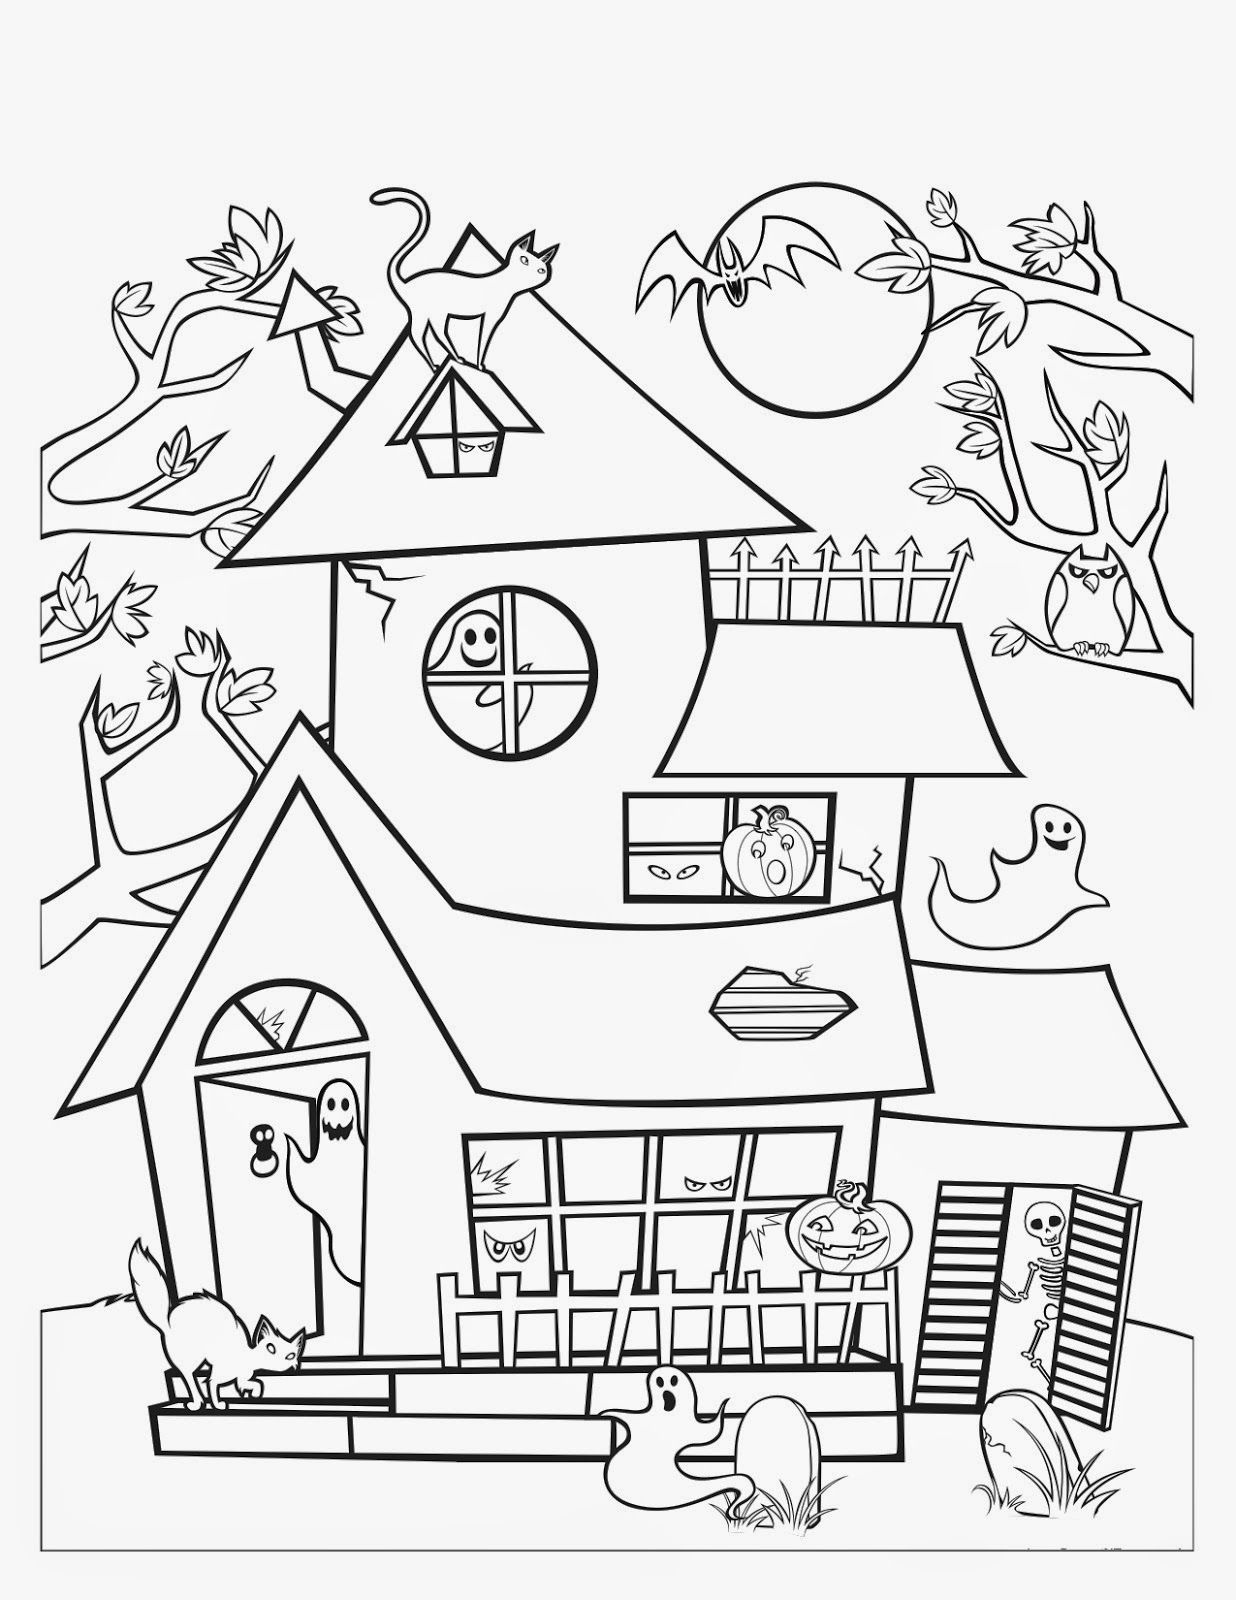 Image Result For Free Printable Halloween Haunted House Halloween Coloring Pages Printable House Colouring Pages Kids Printable Coloring Pages